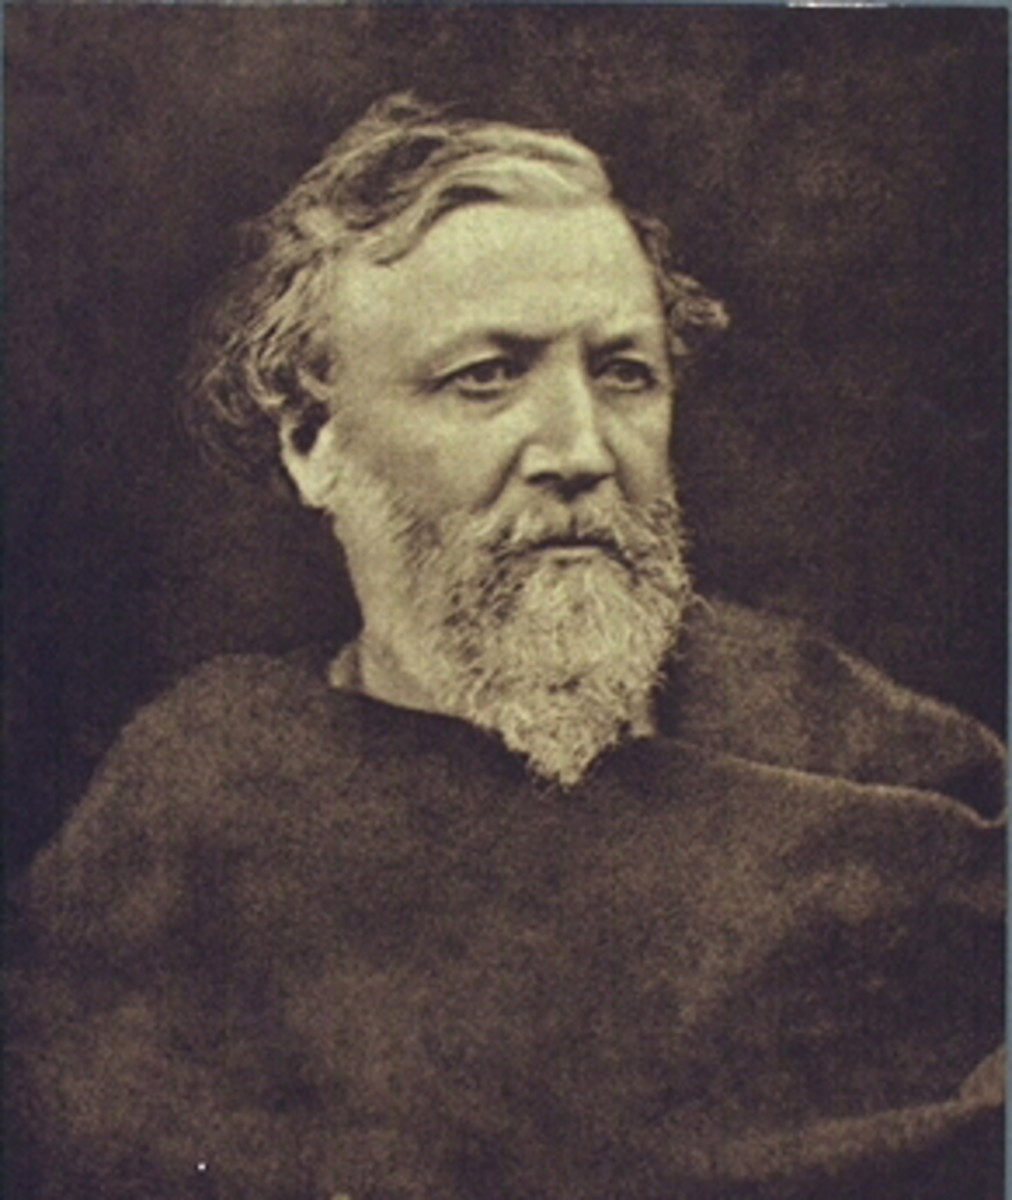 Robert Browning and the Dramatic Monologue